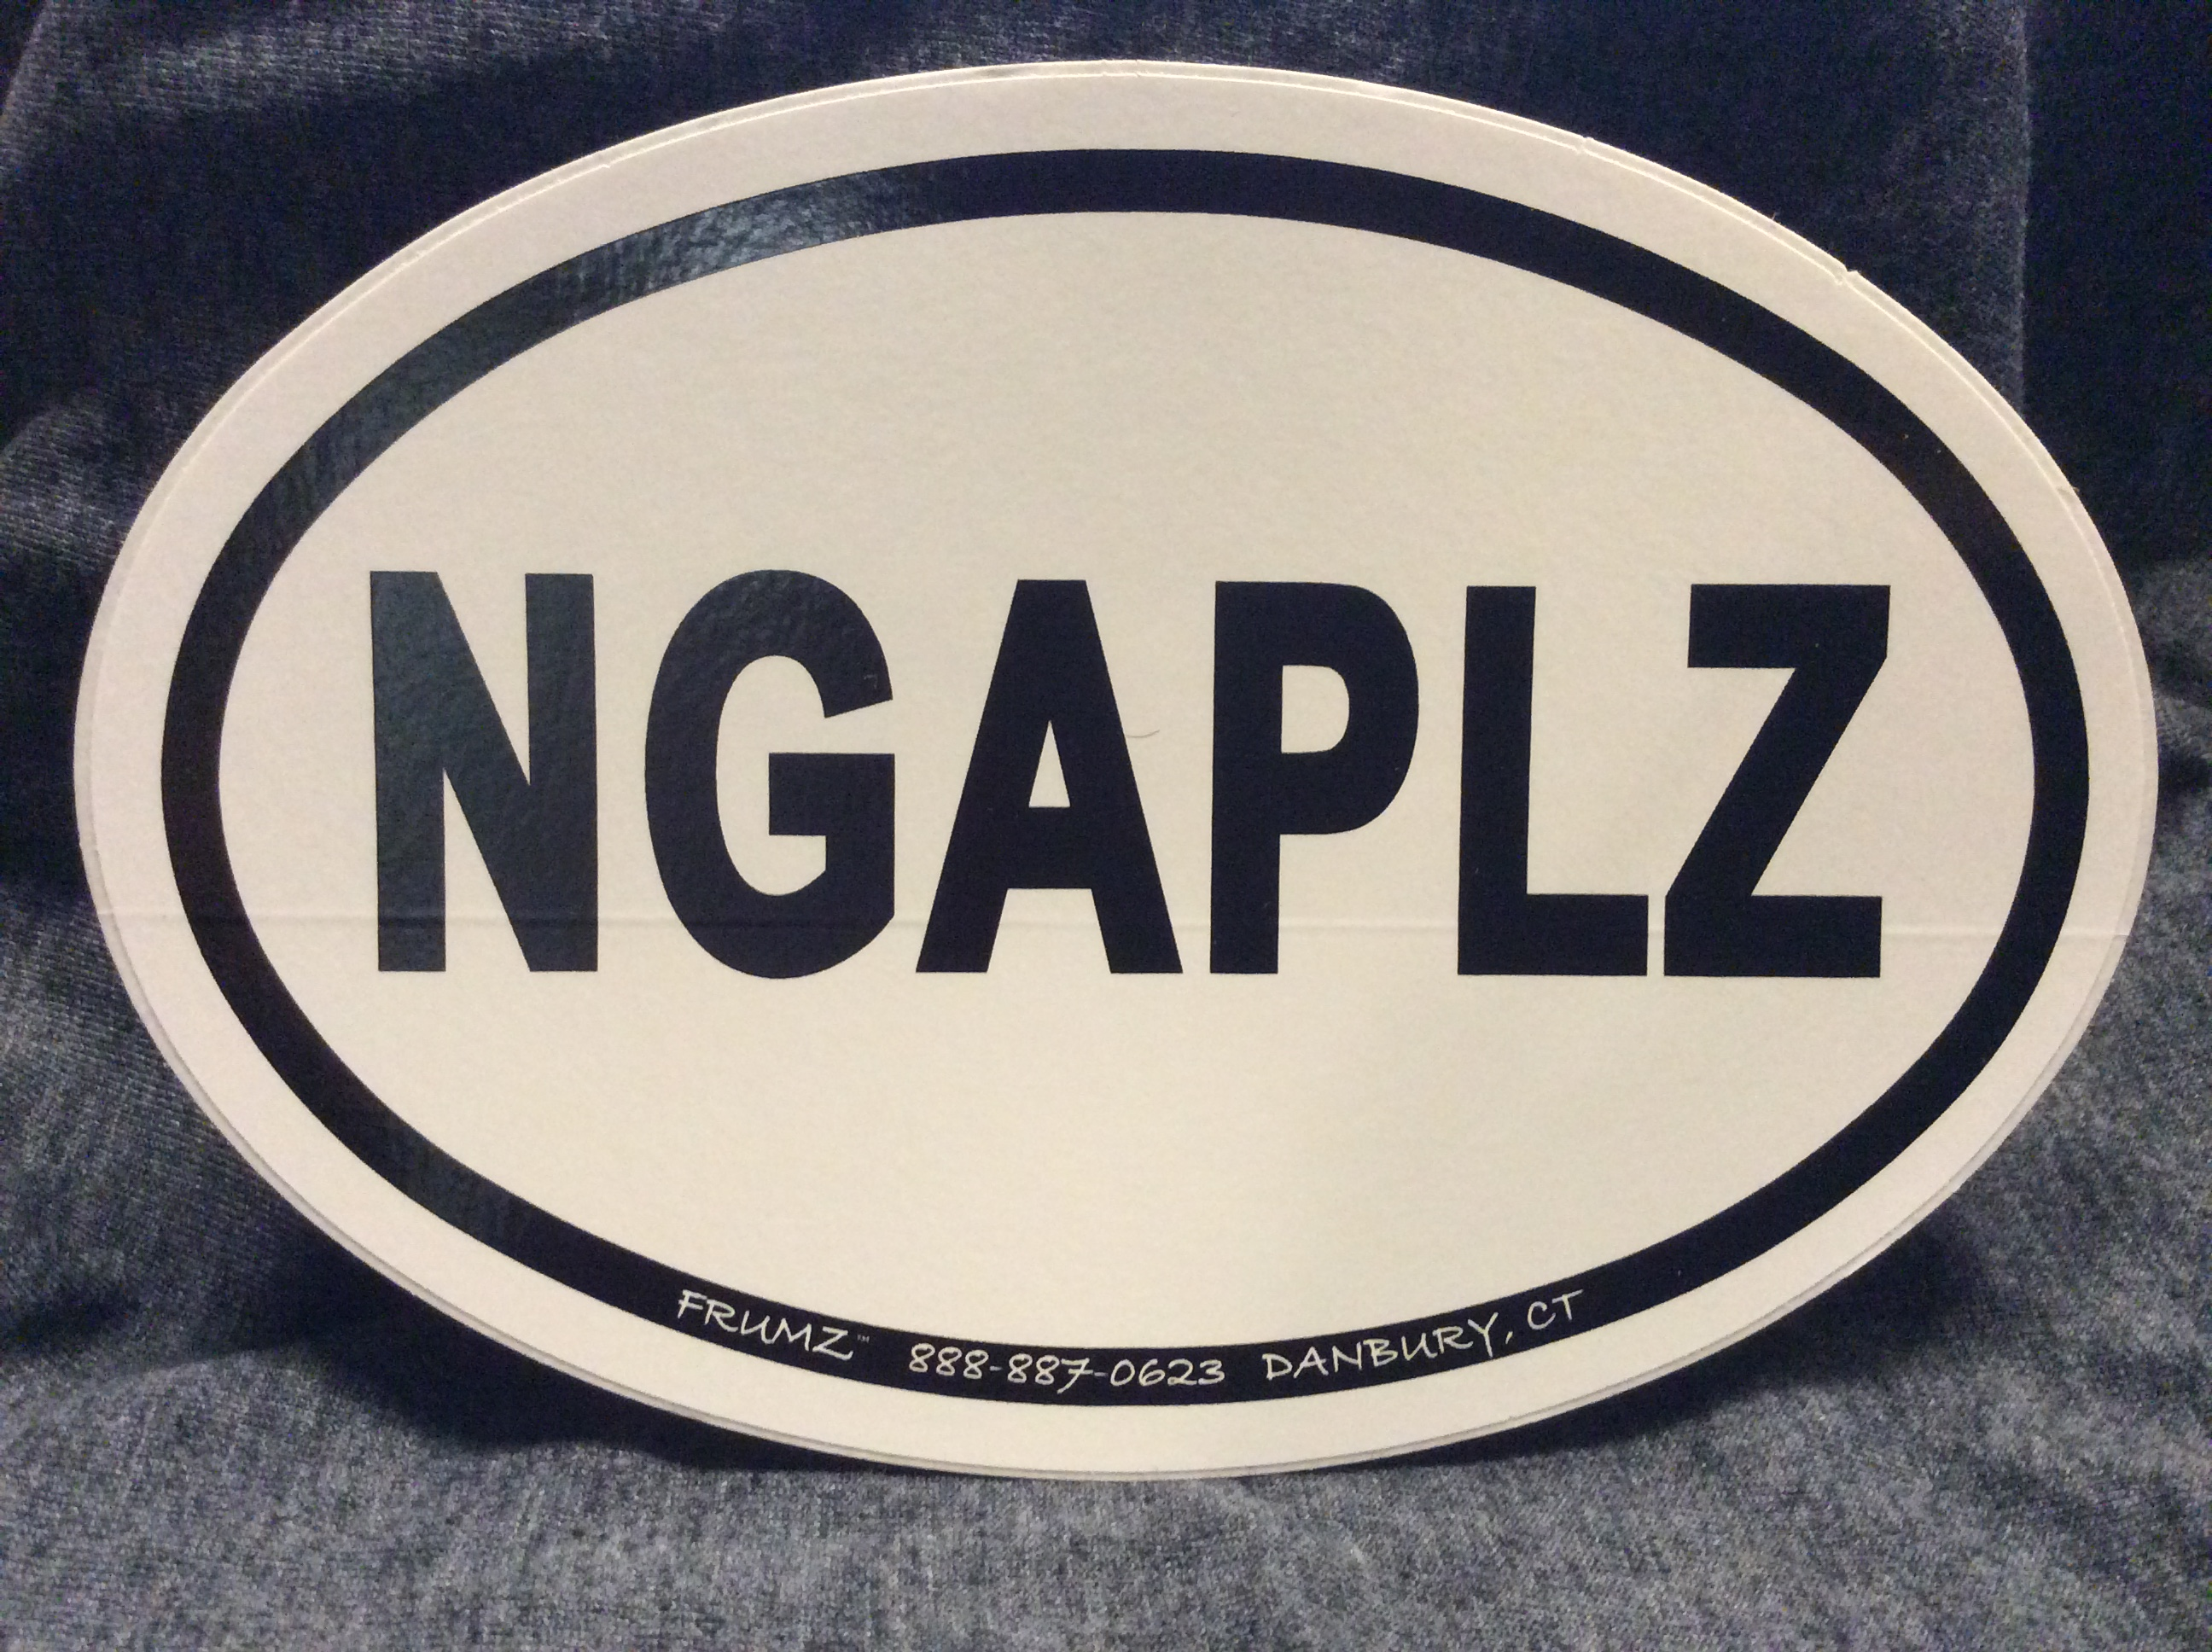 NGAPLZ oval sticker decal